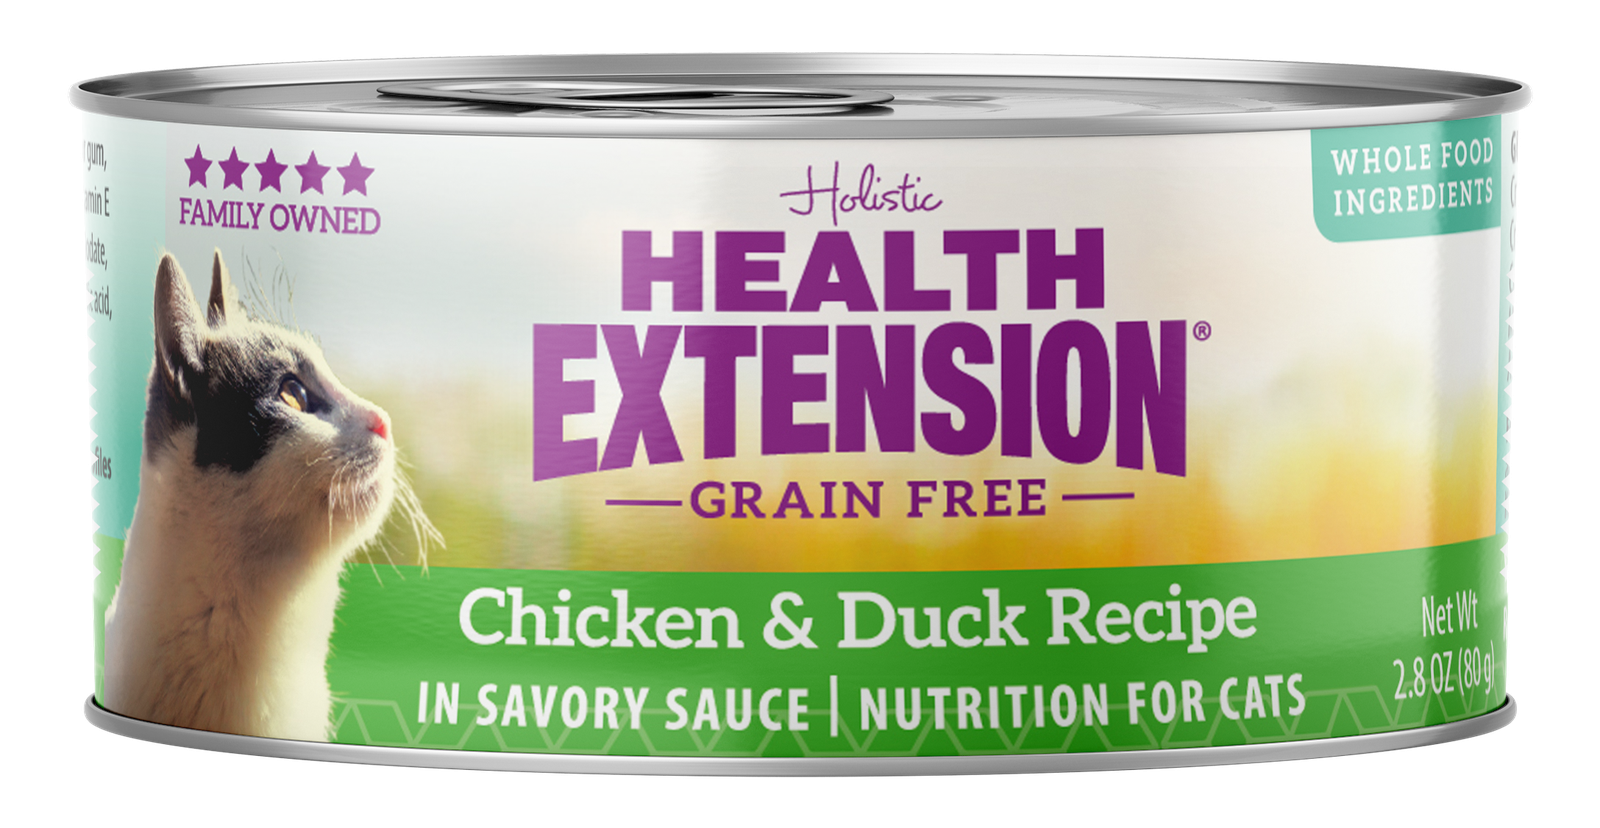 Health Extension Grain-Free Chicken & Duck Recipe Canned Cat Food, 2.8-oz